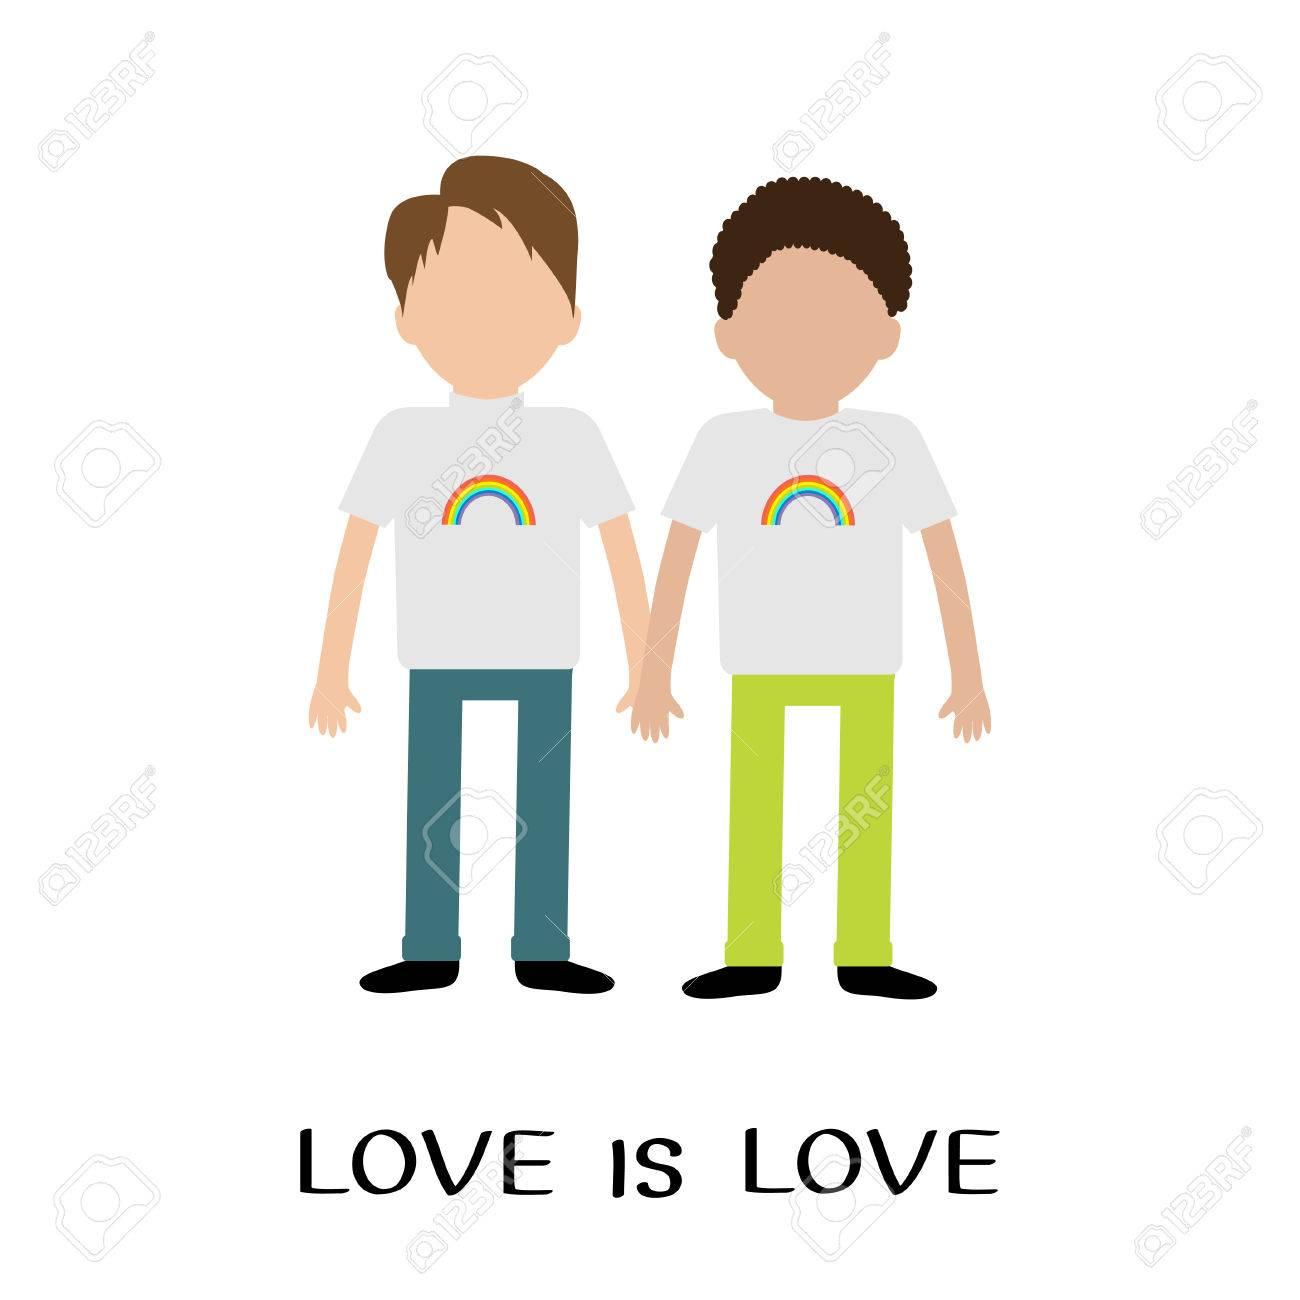 Homofamilie Jongenspaar Regenboog Op Shirt Love Is Love Text